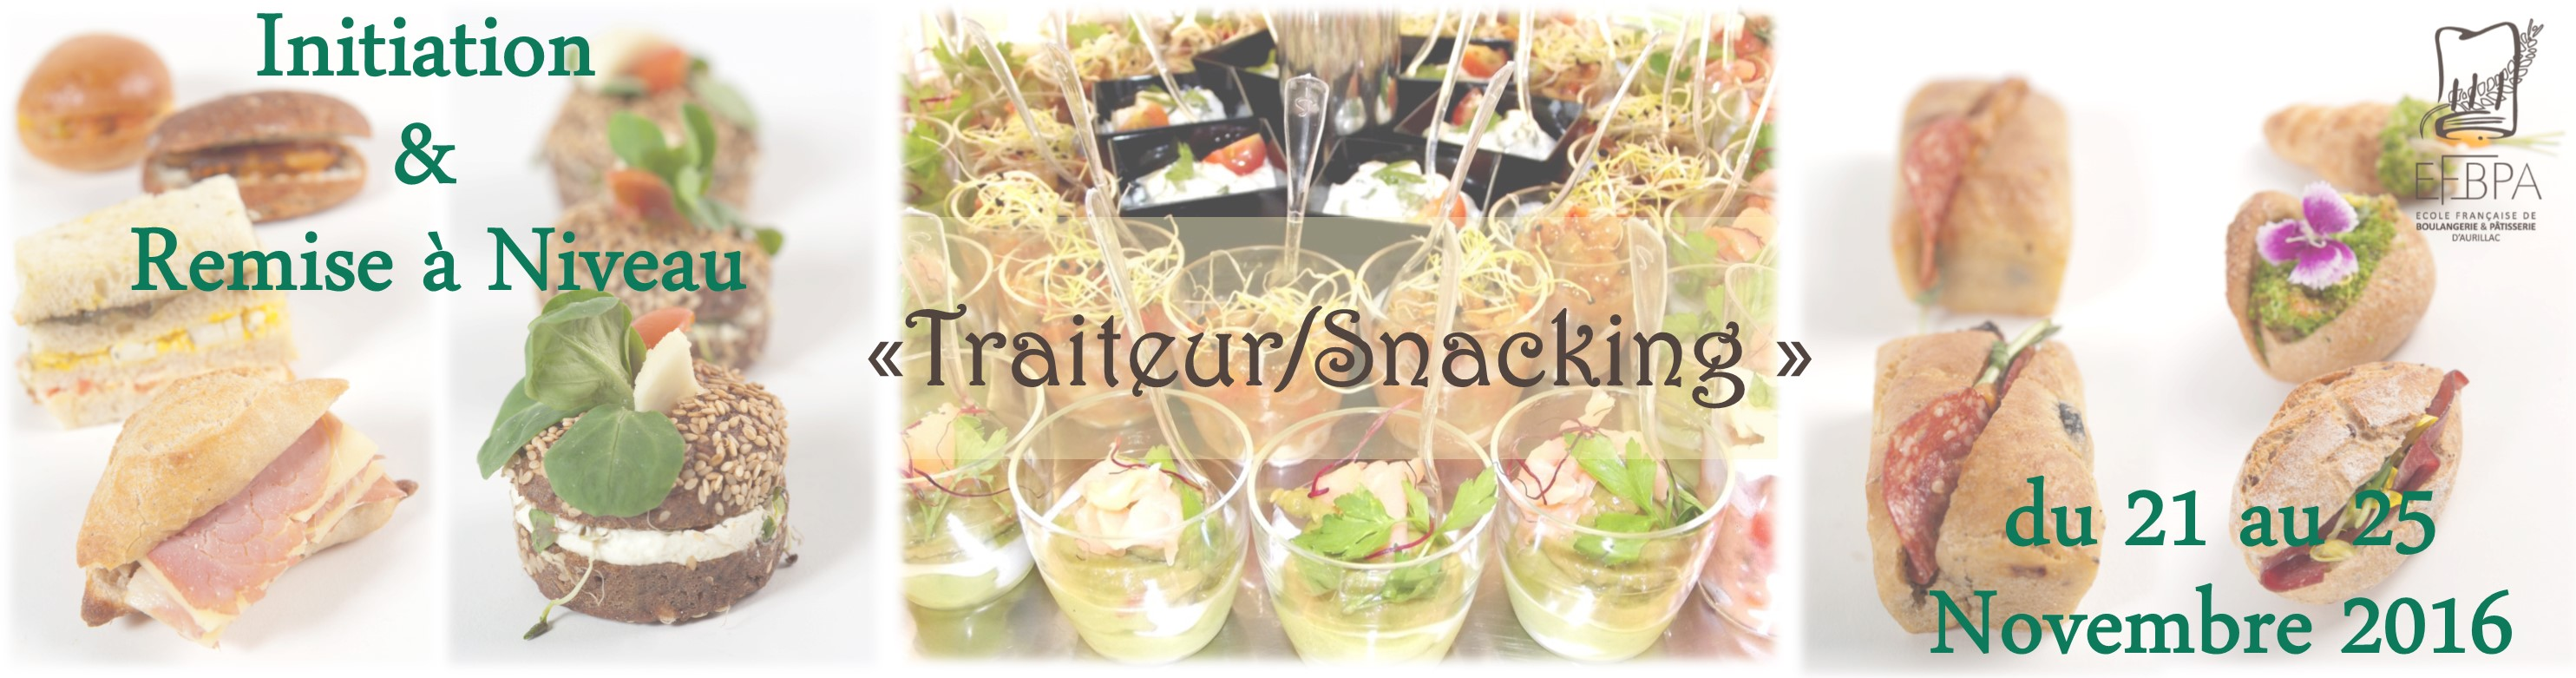 IRN-TRAITEUR-SNACKING